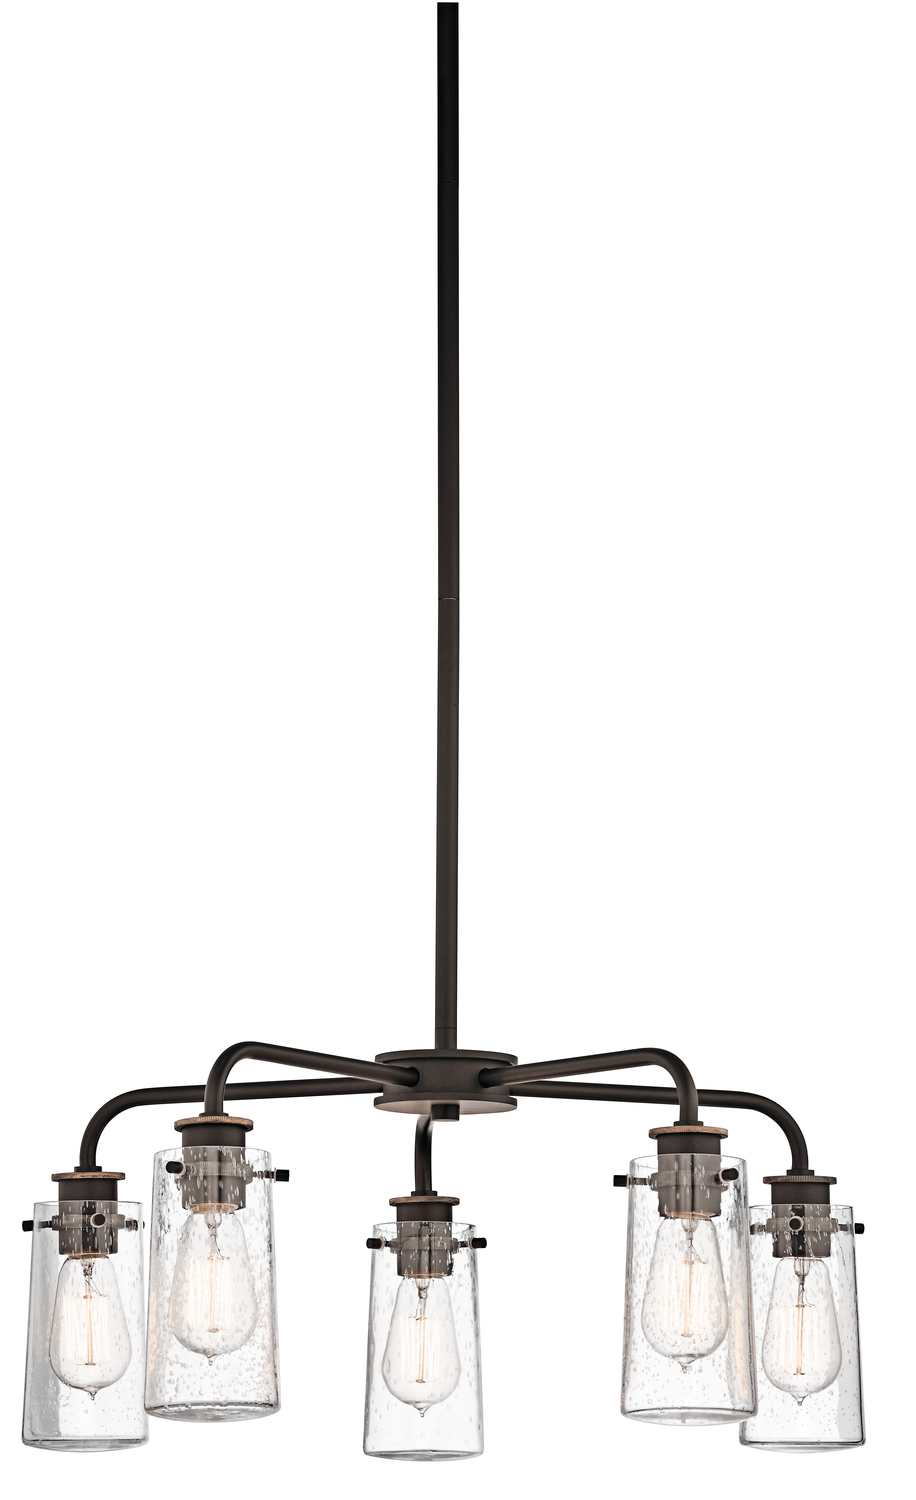 Wilkinson's House of Lighting in St.George, Utah, United States, Kichler 43058OZ, Chandelier 5Lt, Braelyn